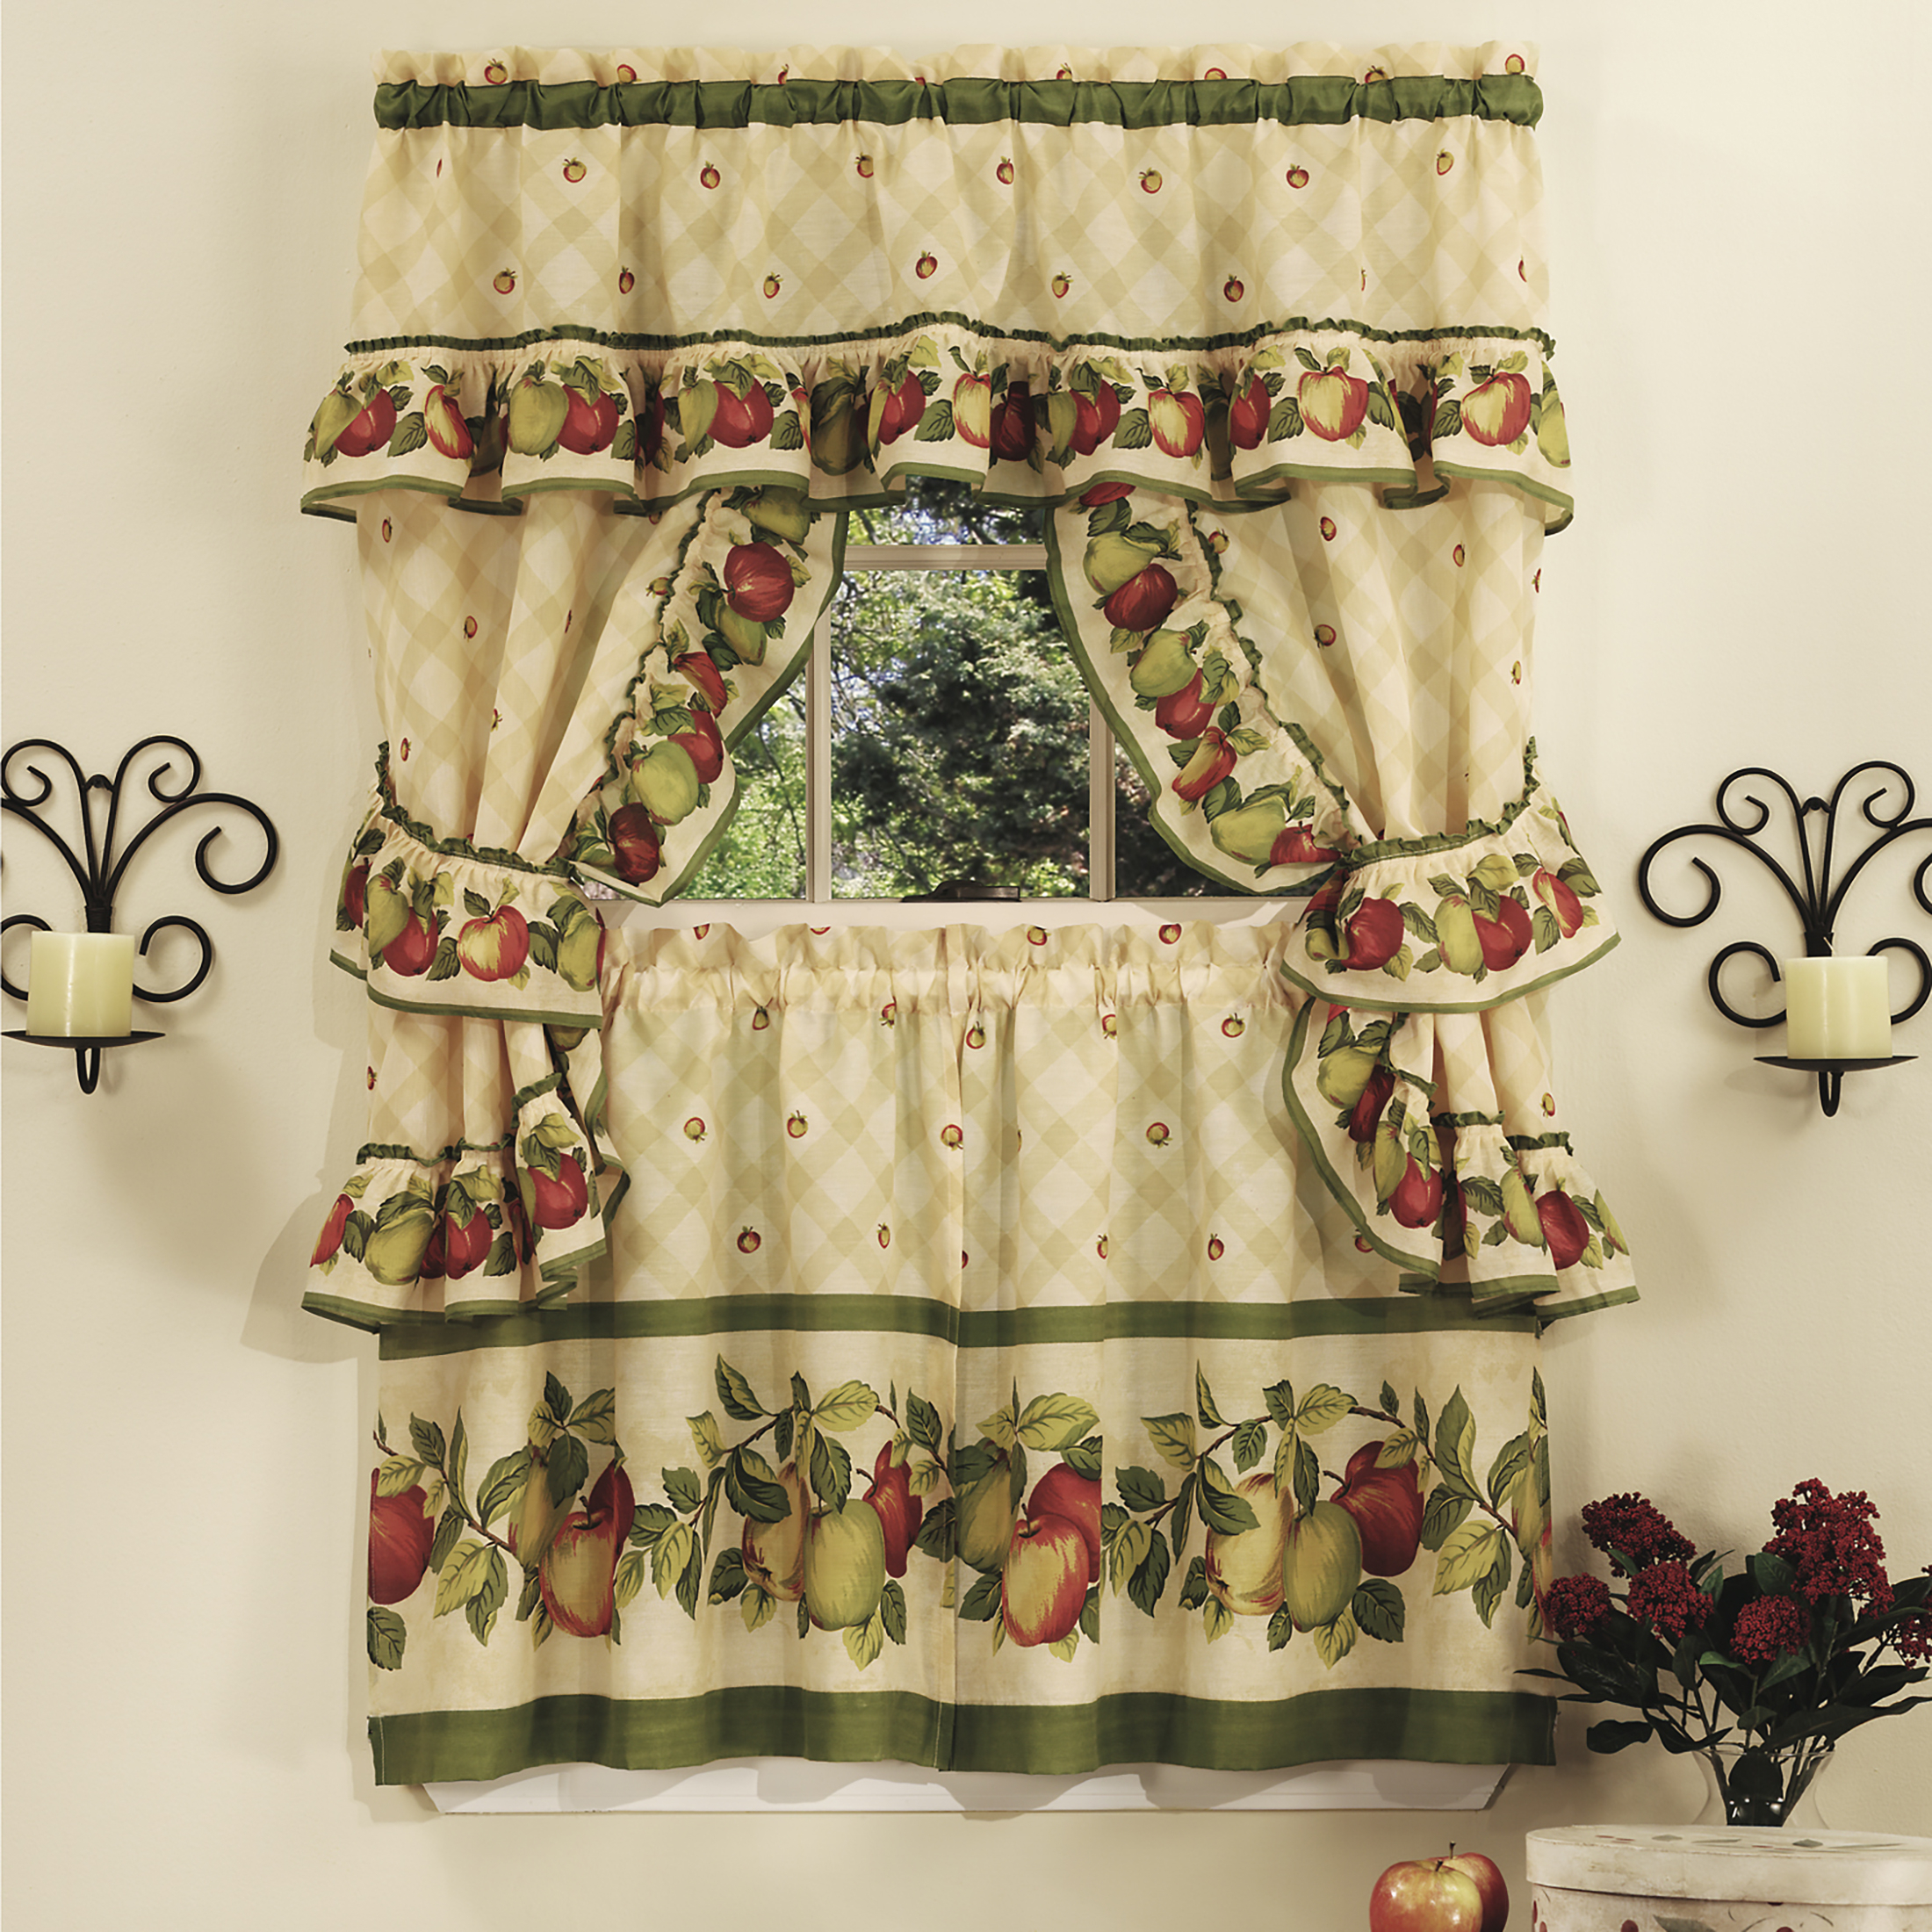 Sunflower Cottage Kitchen Curtain Tier And Valance Sets Pertaining To Famous Details About 5Pc Window Kitchen Curtain Cottage Set, Apple Vines, Tiers, Valance, Tiebacks (View 5 of 20)